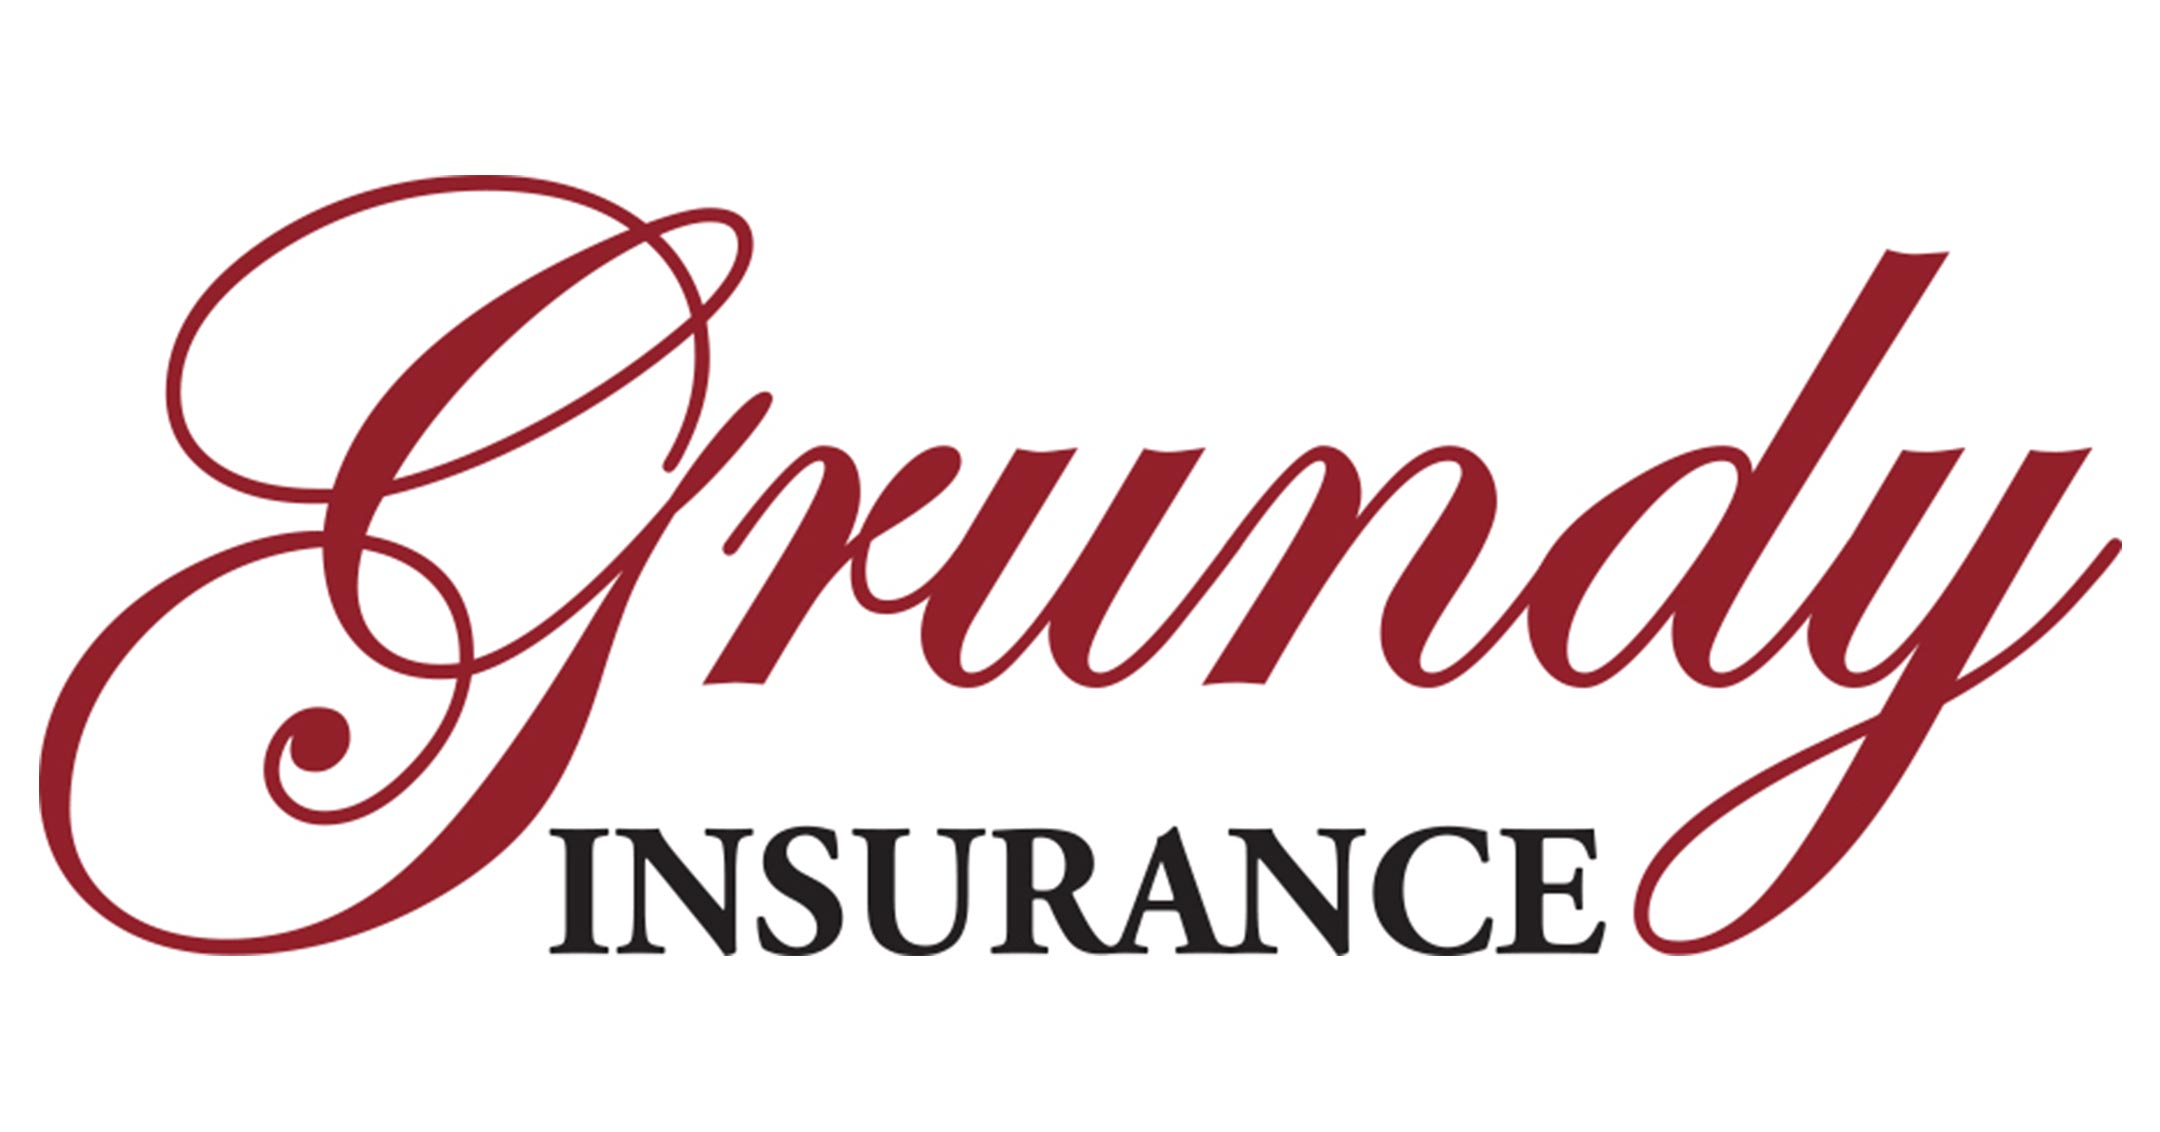 Grundy Insurance | Tavres.com